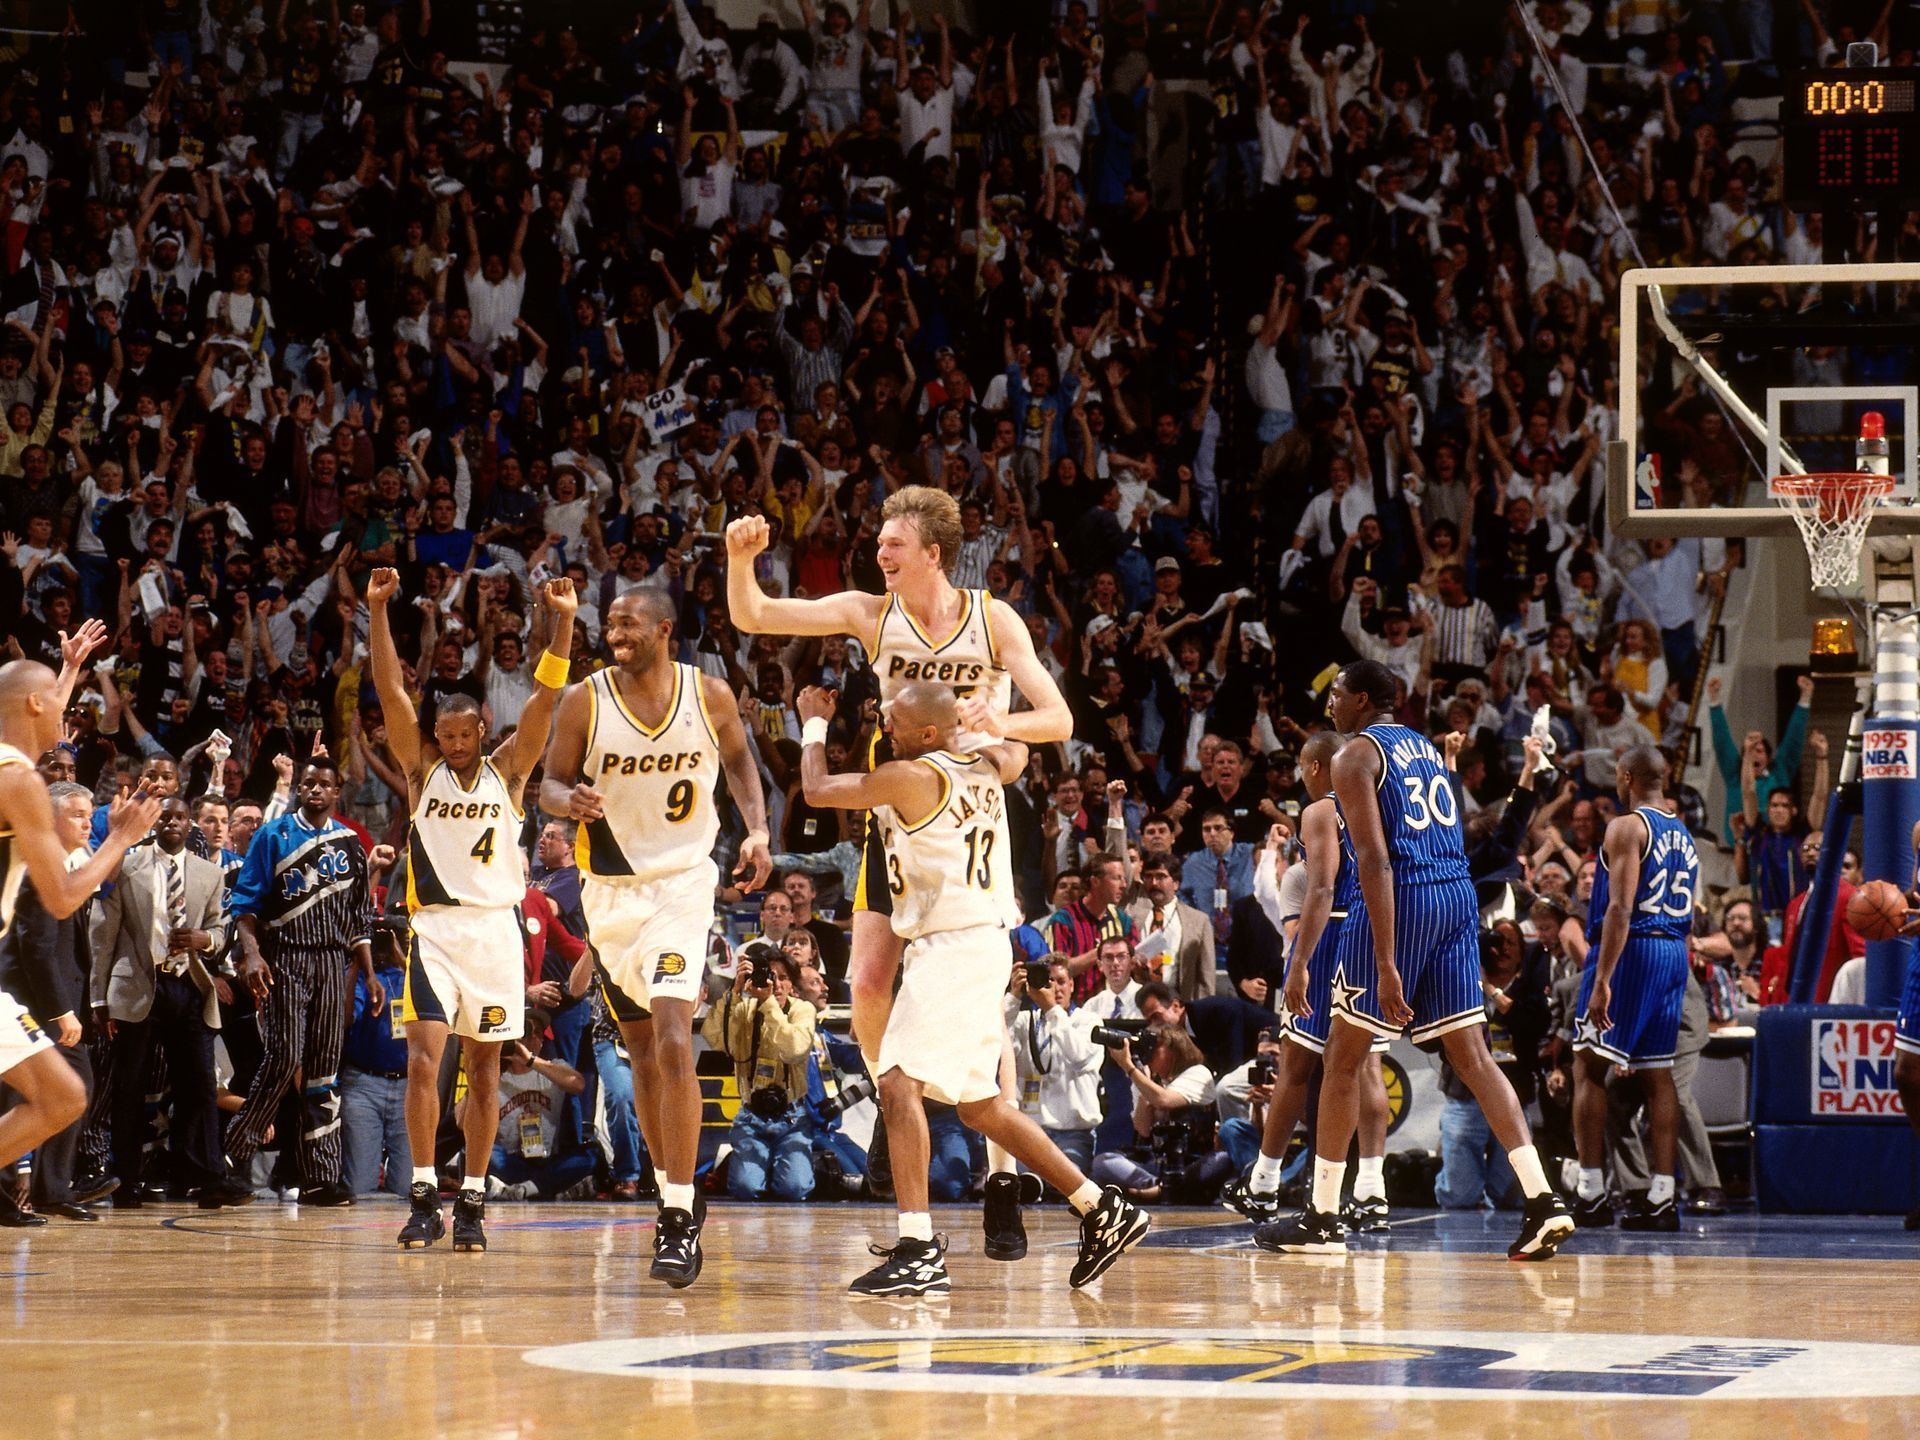 Rik Smits Game 4 of the 1995 Eastern Conference Finals With the